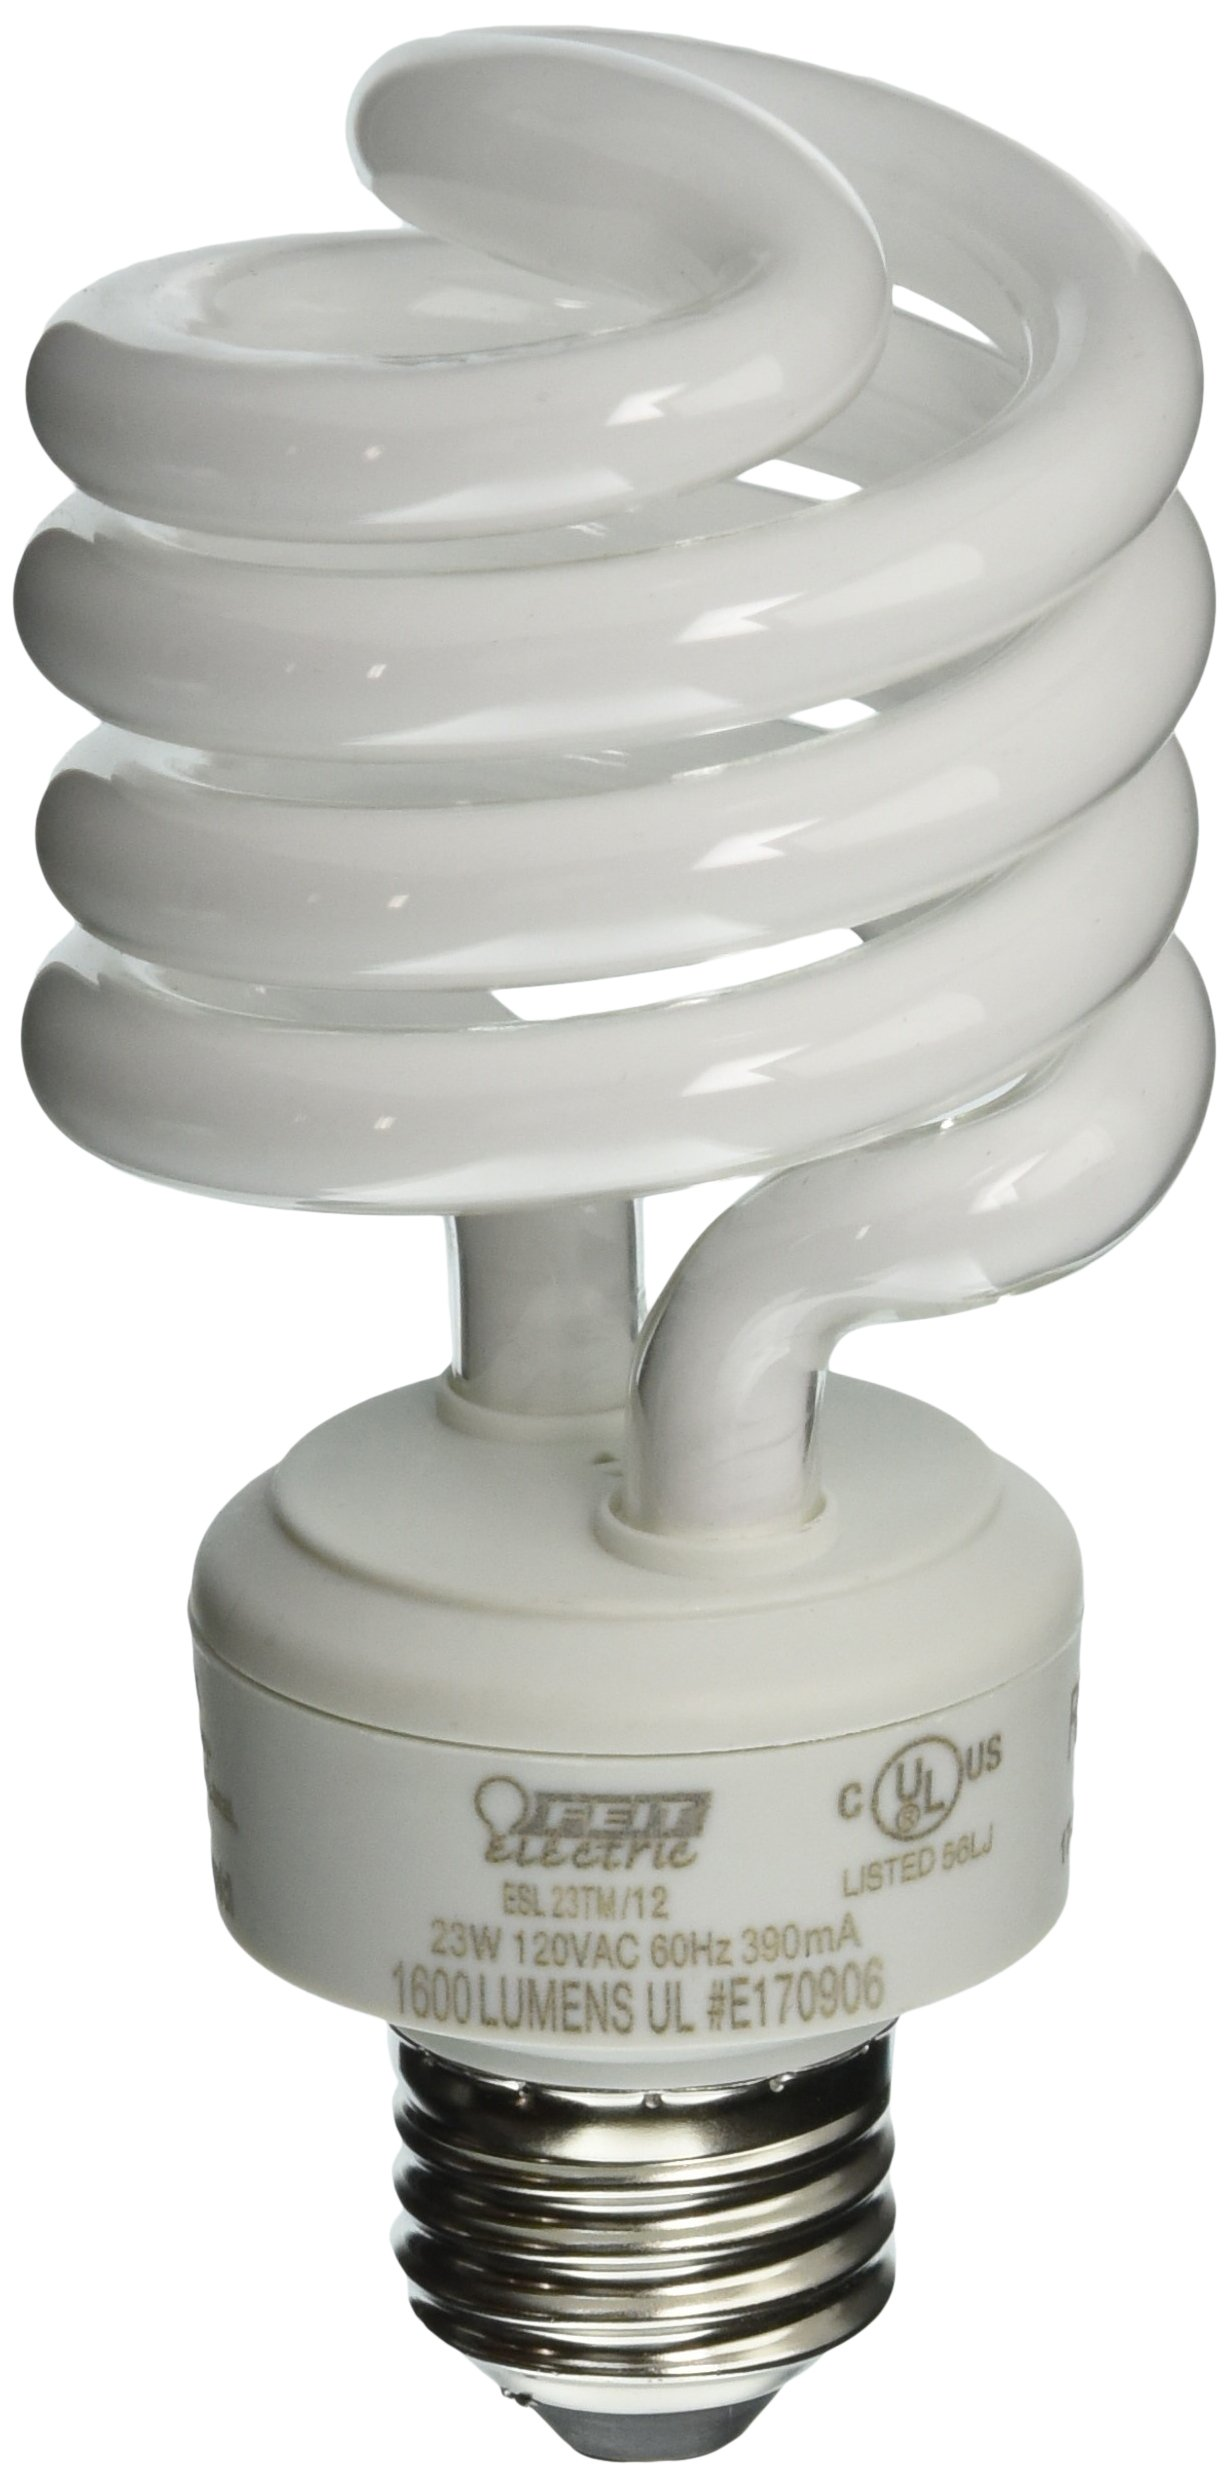 Feit ESL23TM/12 100W Equivalent CFL Twist Bulb (Pack of 12), Soft White